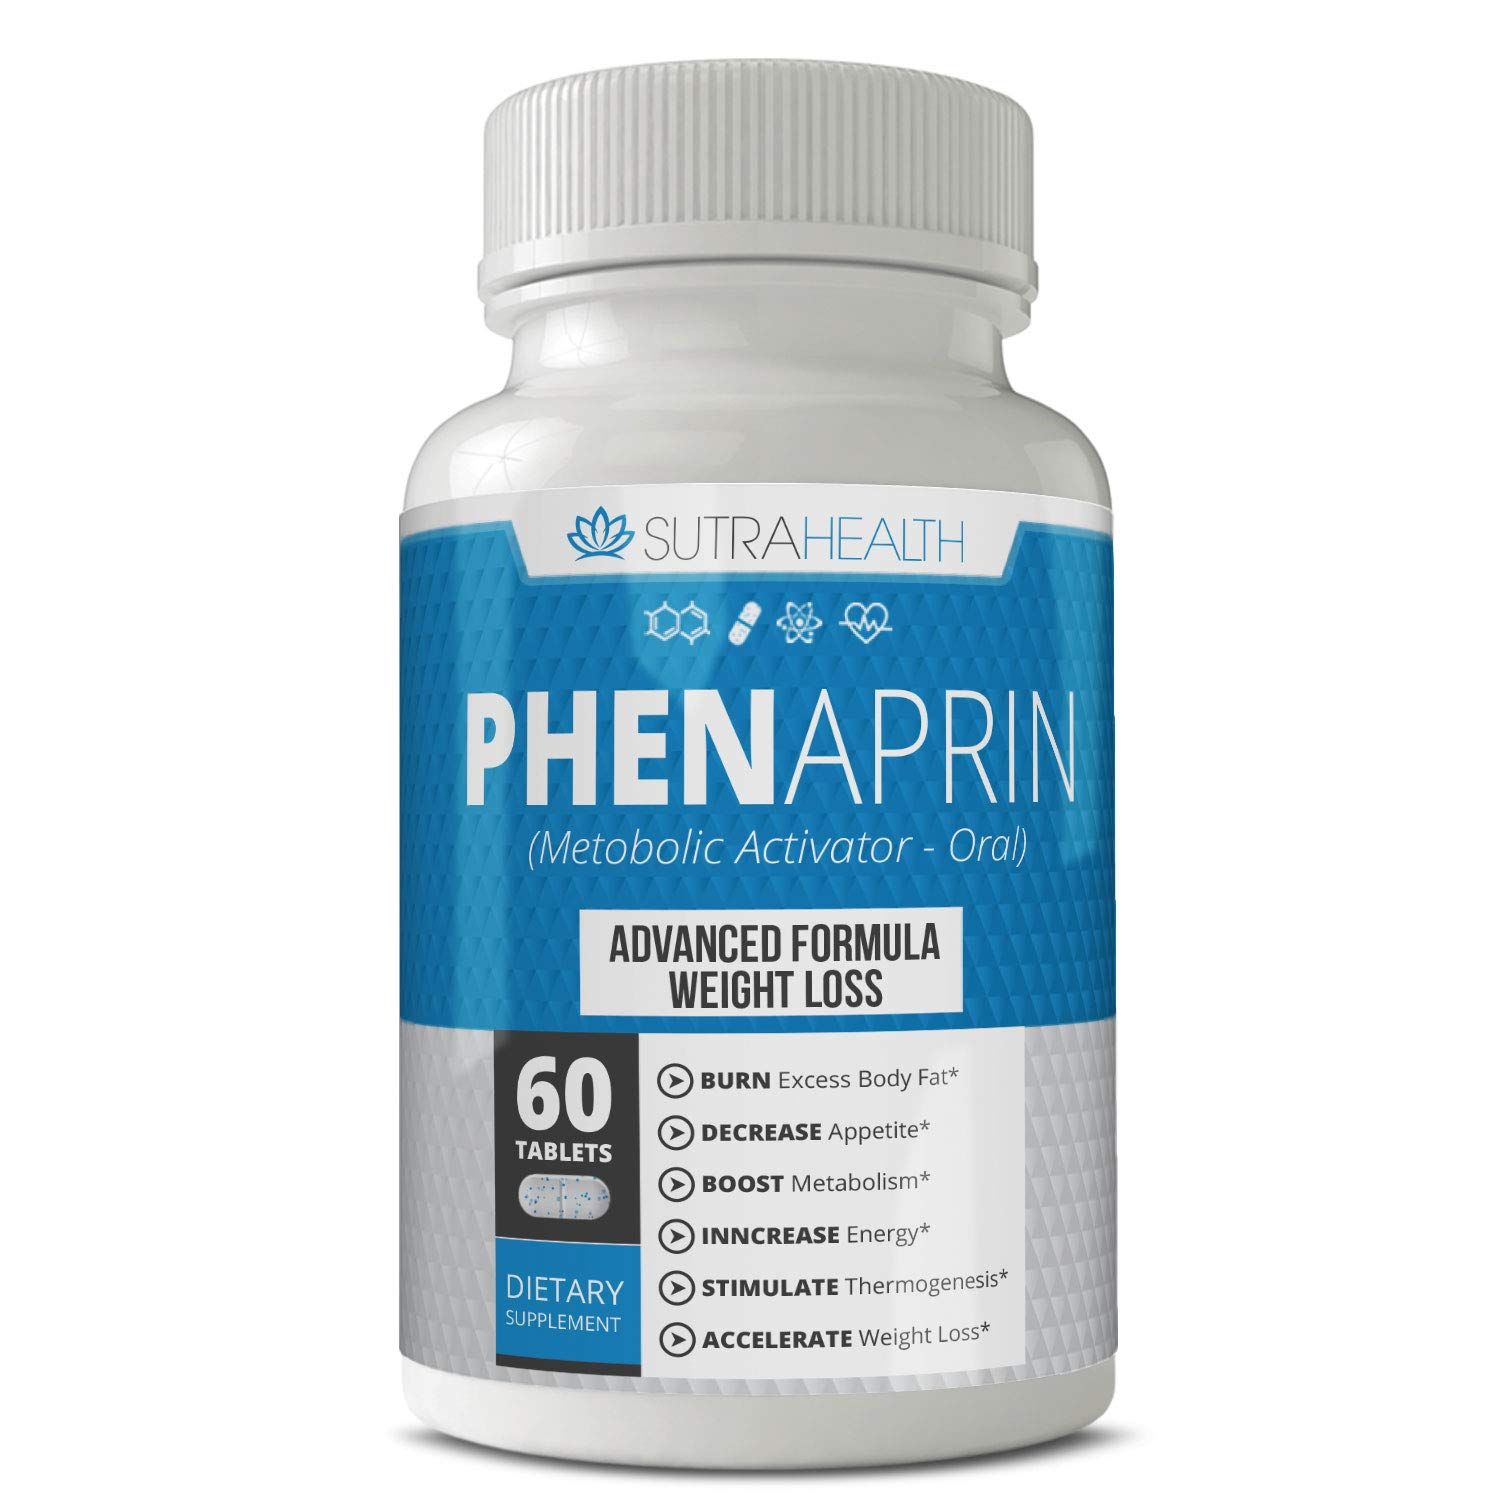 PhenAprin Diet Pills - Best Appetite Suppressant: Weight Loss and Energy Boost for Metabolism - Optimal Fat Burner Supplement; Helps Curb and Control Appetite, Promotes Mood & Brain Function by PhenAprin